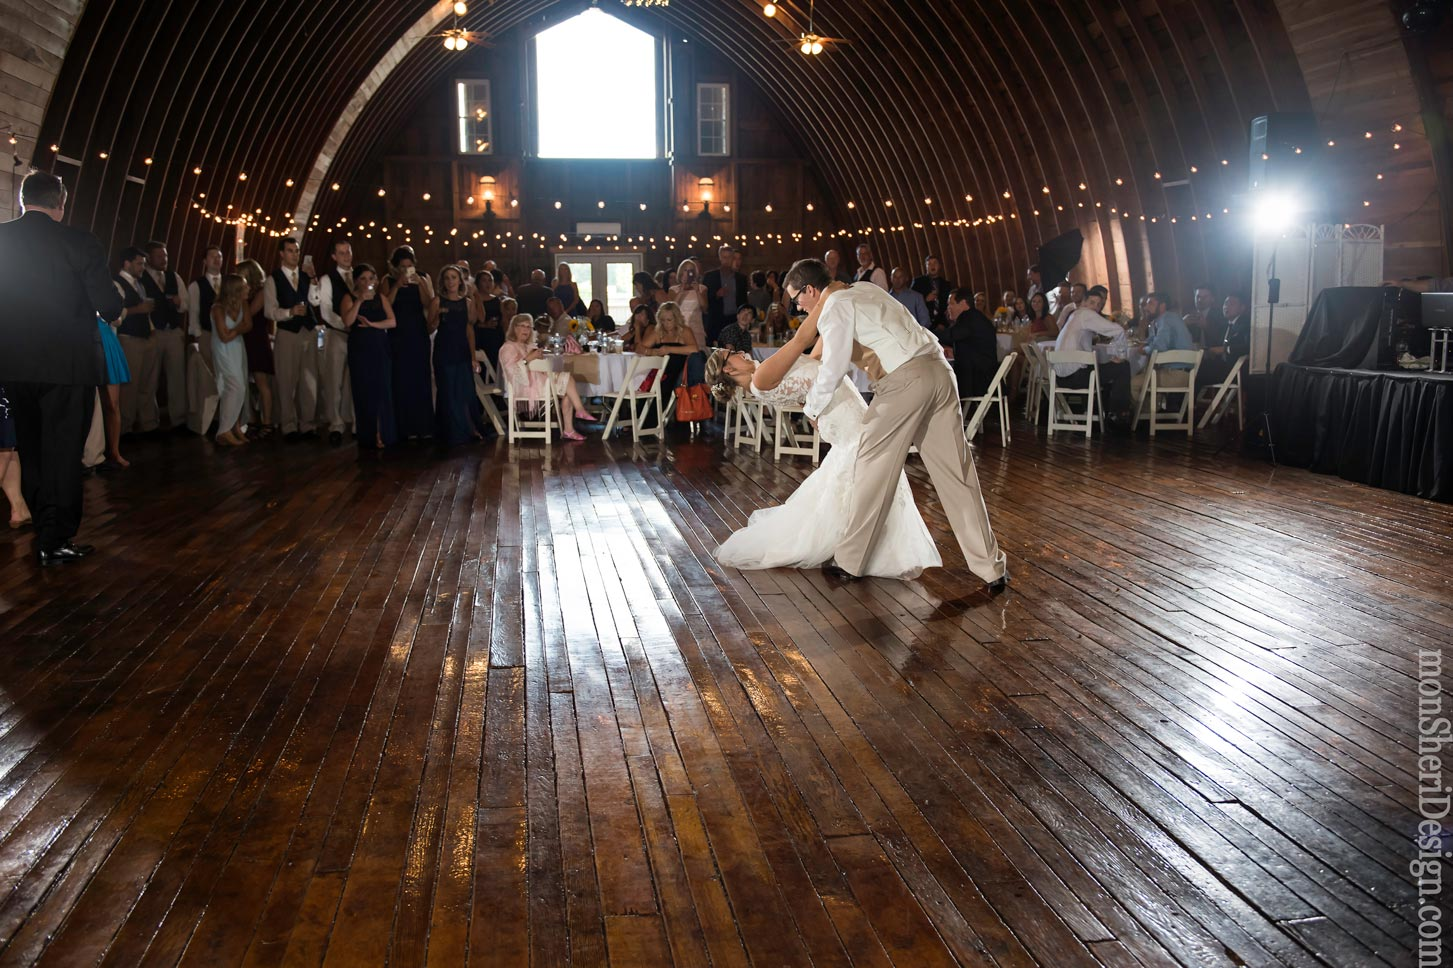 Event Photography - Grand Rapids, MI-HITCHING POST EVENTS  wedding & event venue